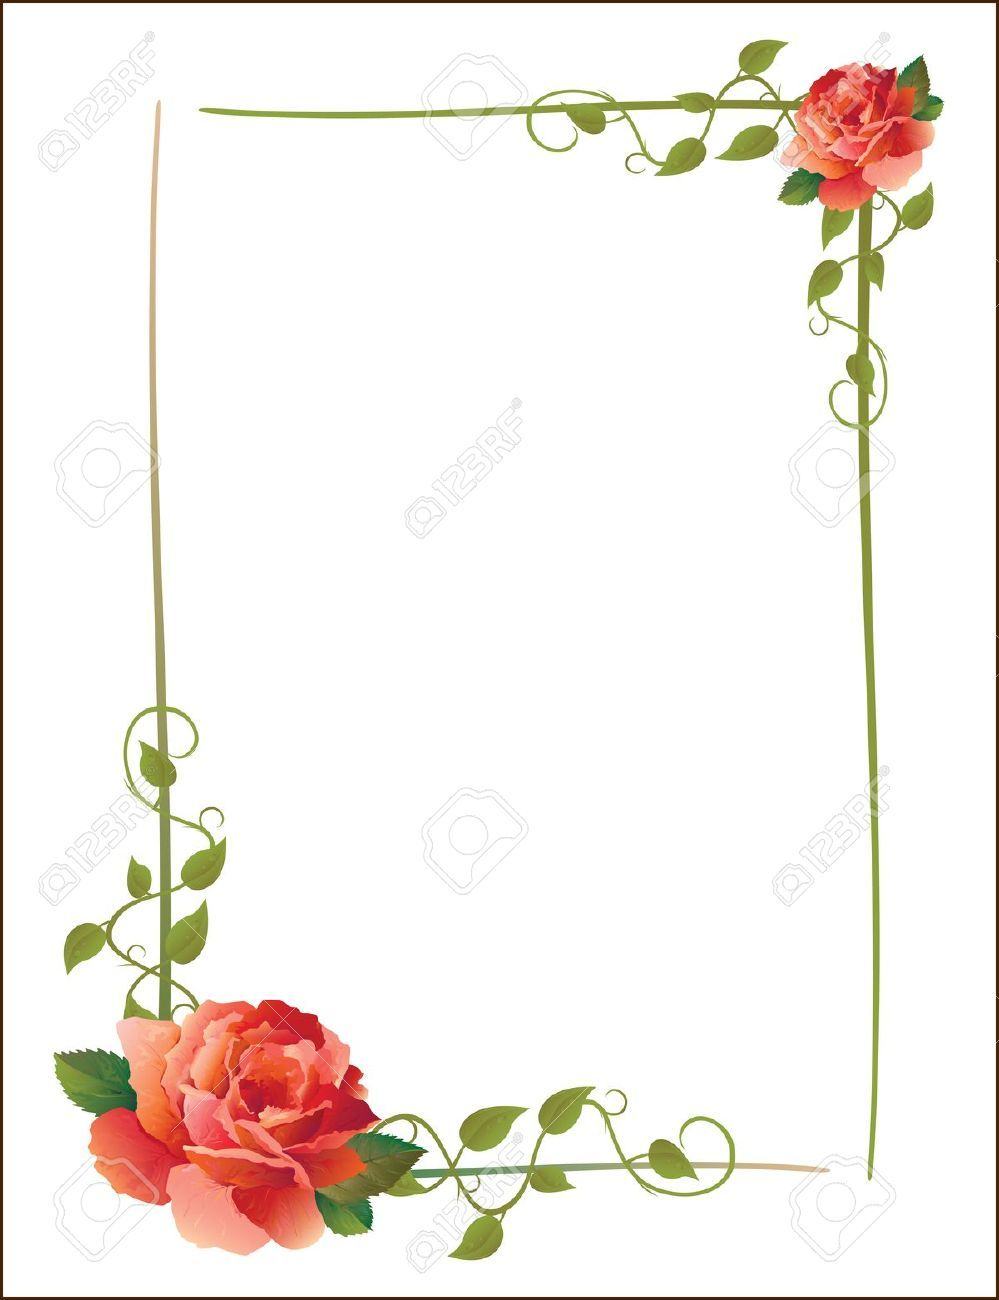 5638136-vintage-frame-with-roses-and-creeping-plant-Stock ...